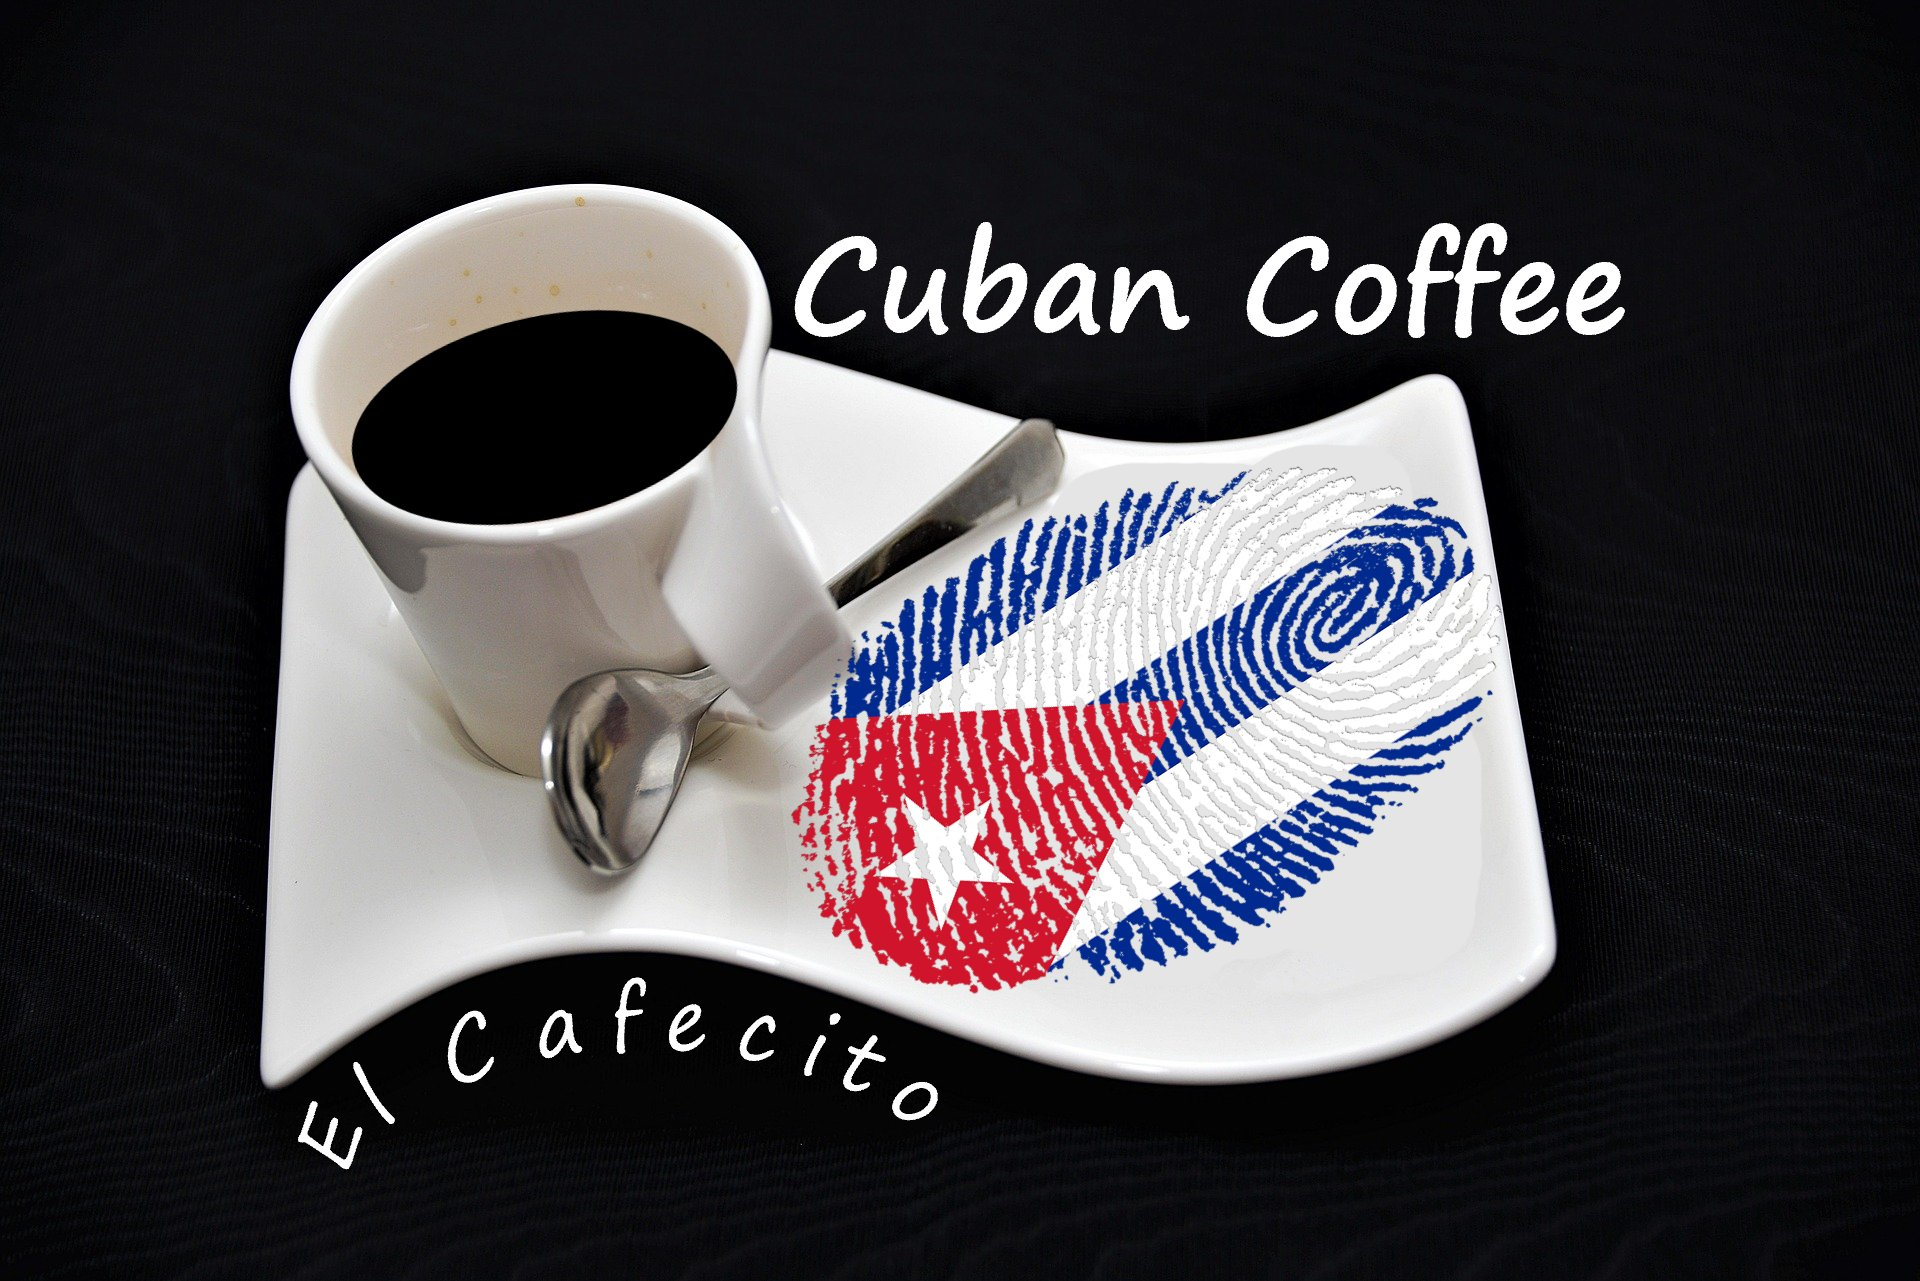 Make Cuban Coffee With a French Press - Cafe Cubano -El Cafecito